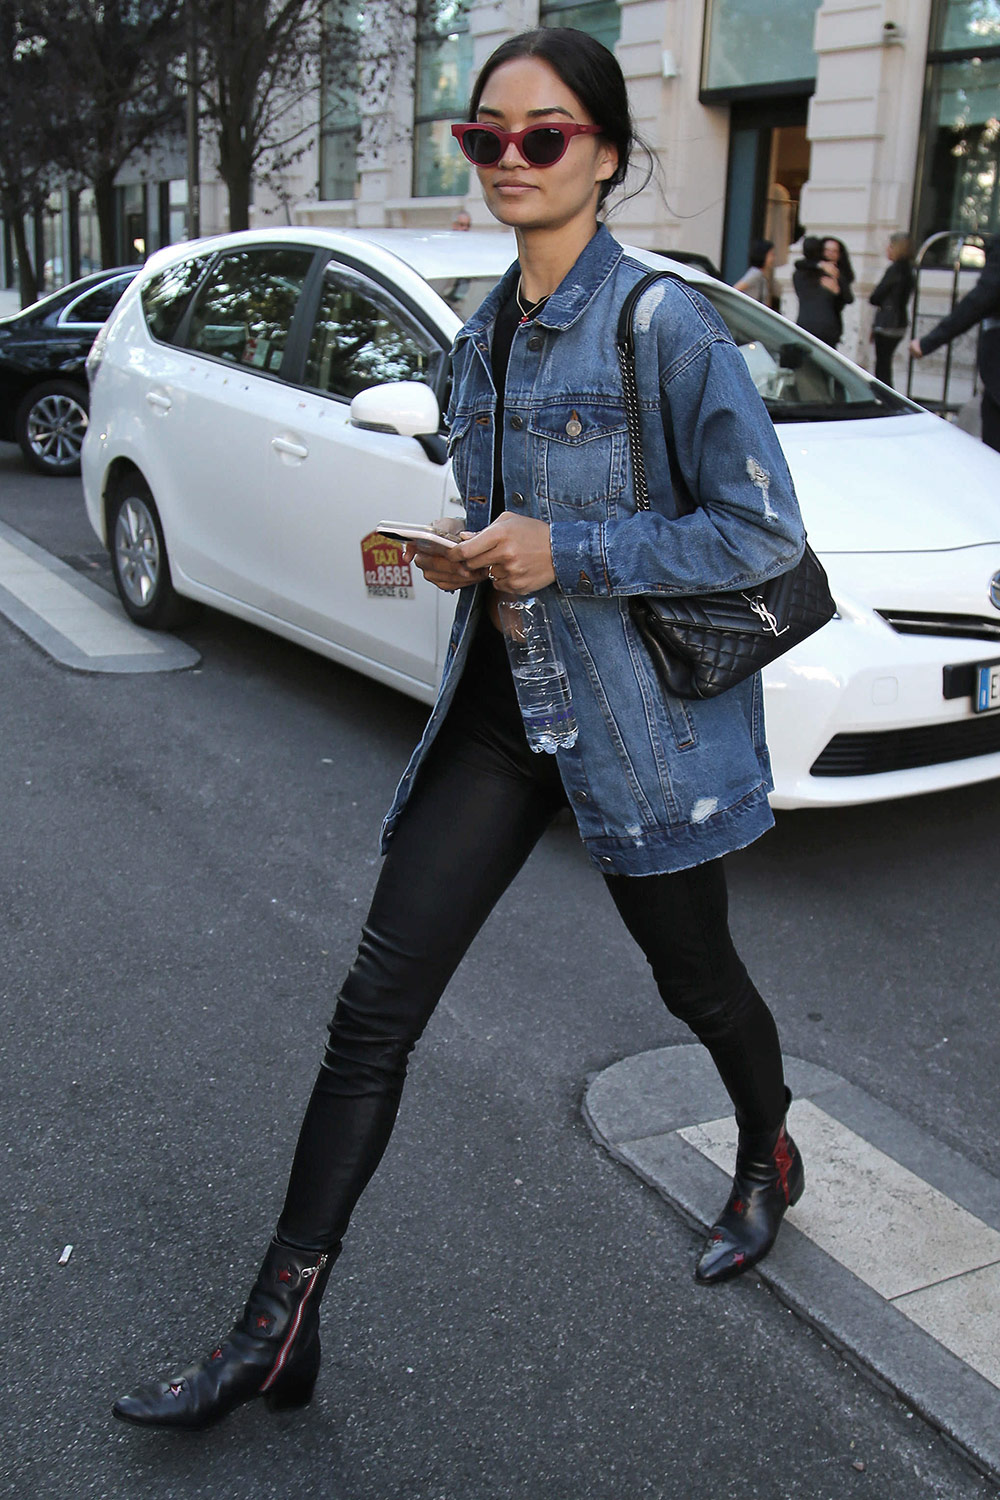 Shanina Shaik out & about in Milan